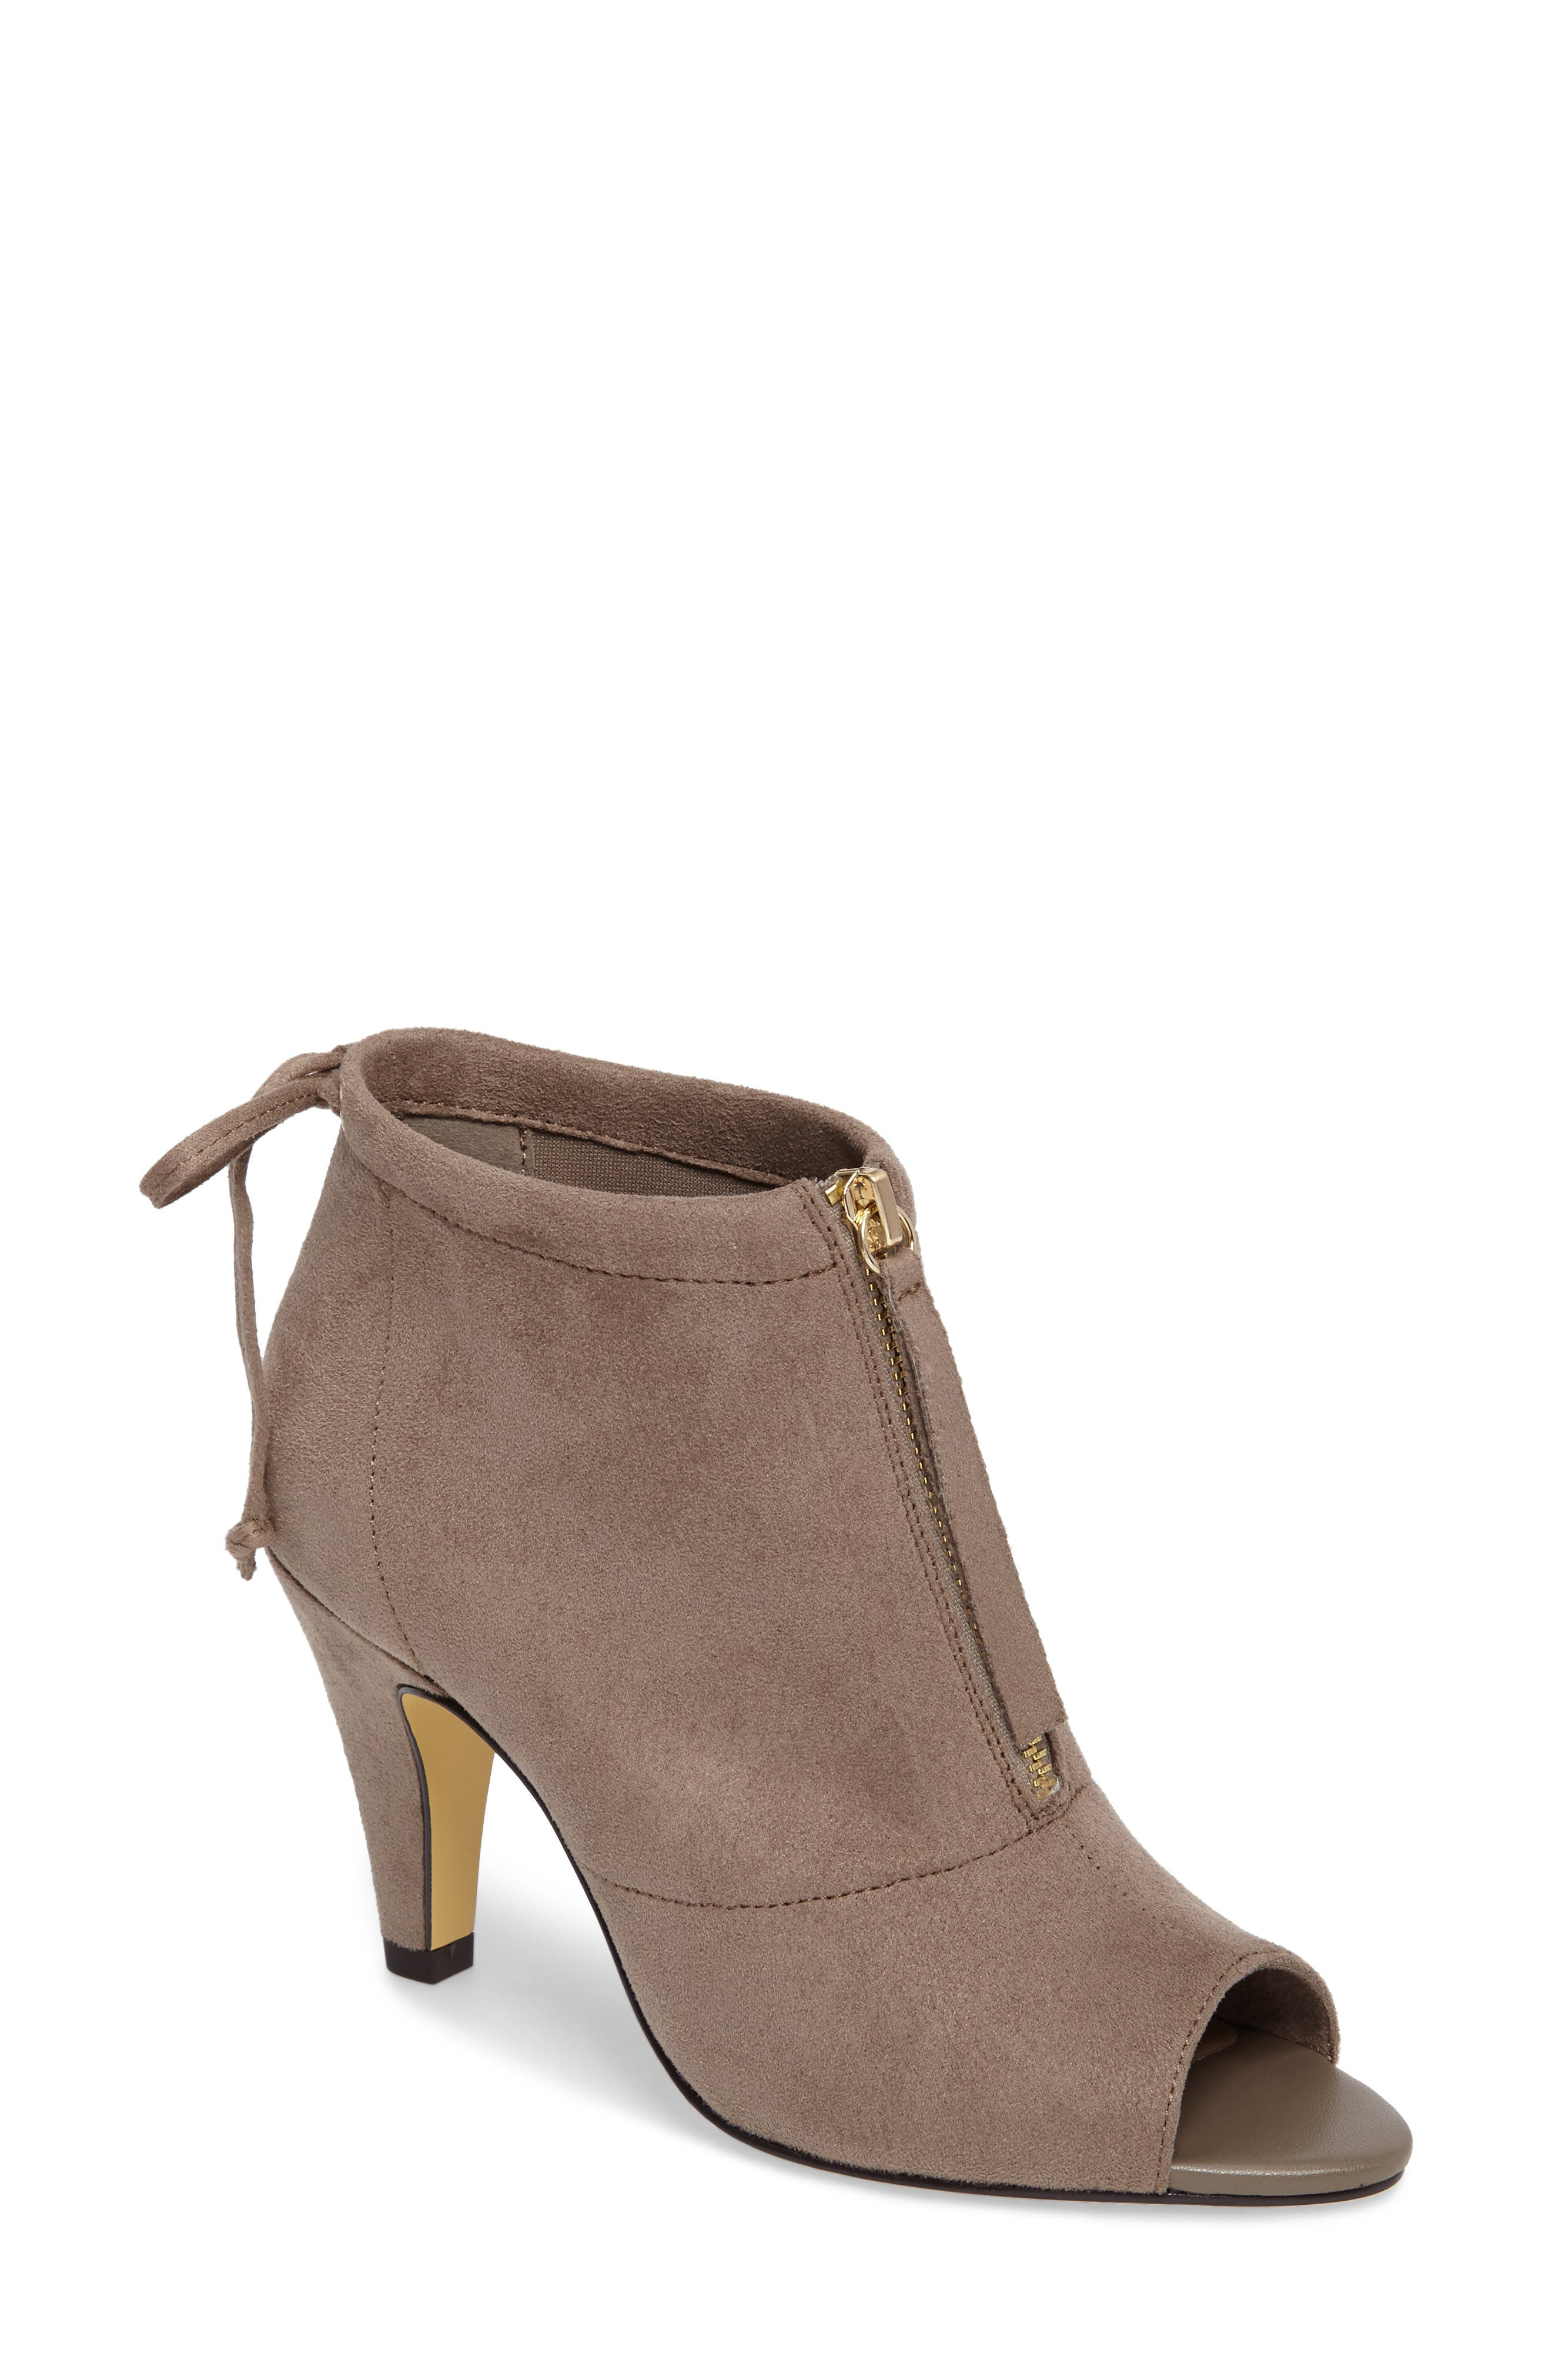 Nicky II Zip Front Bootie,                             Main thumbnail 1, color,                             STONE FAUX SUEDE